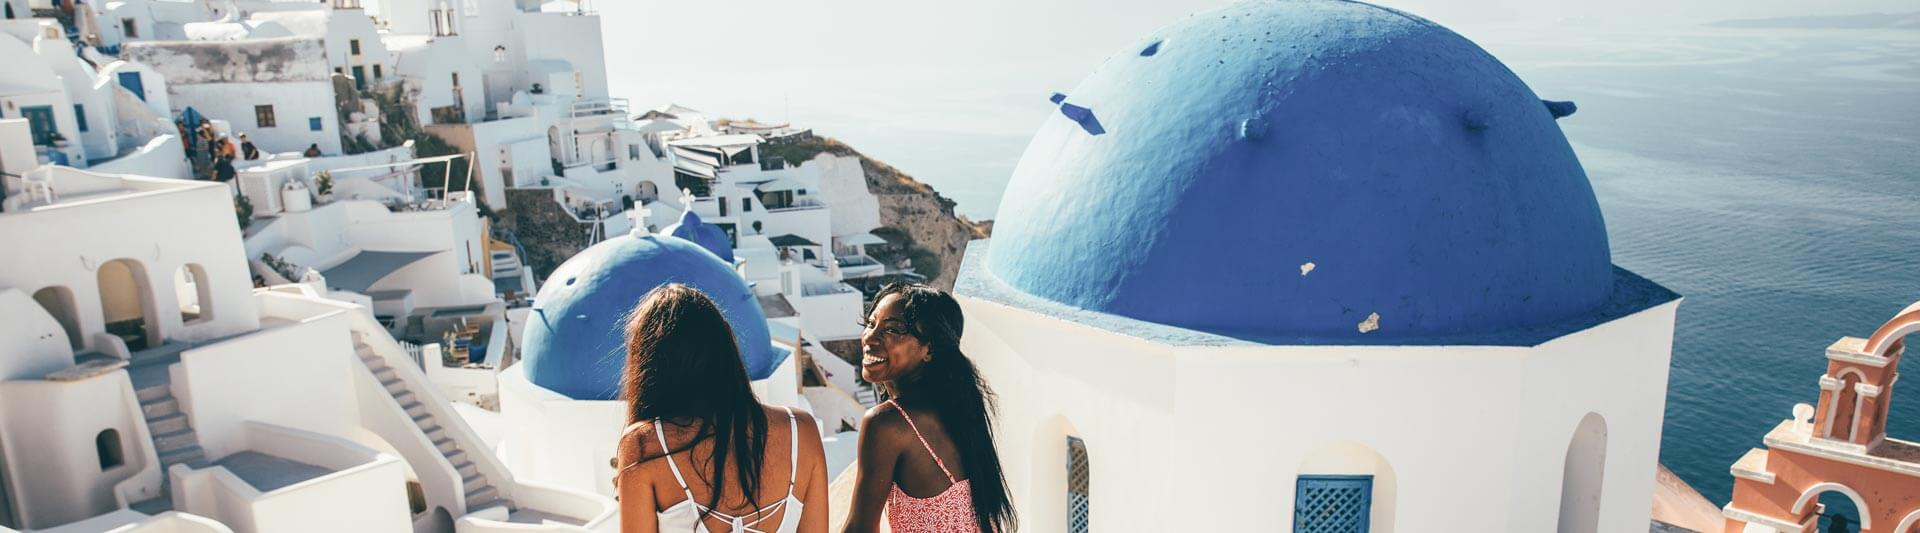 contiki-make-it-count-santorini-rooftops